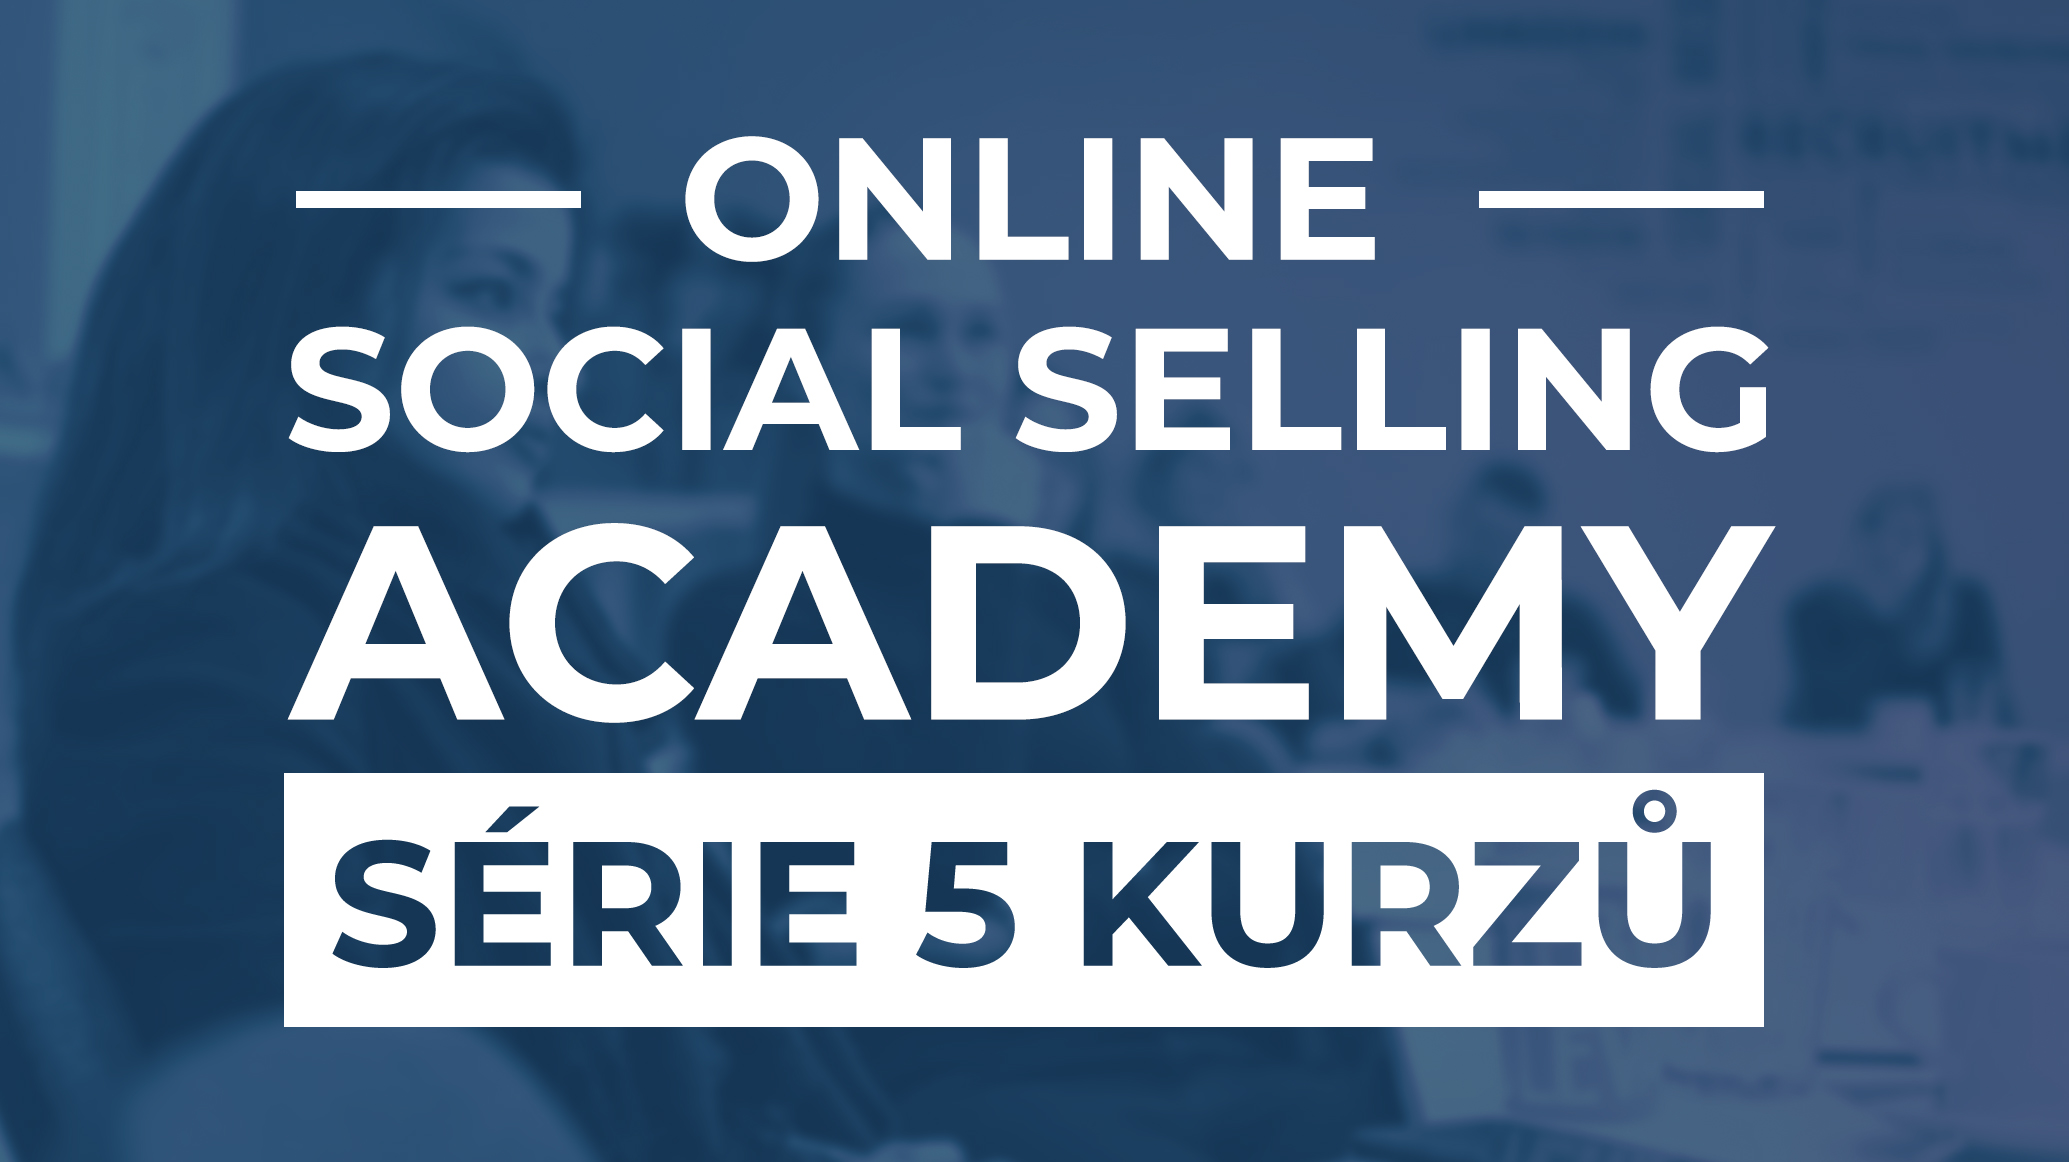 Online Social Selling Academy